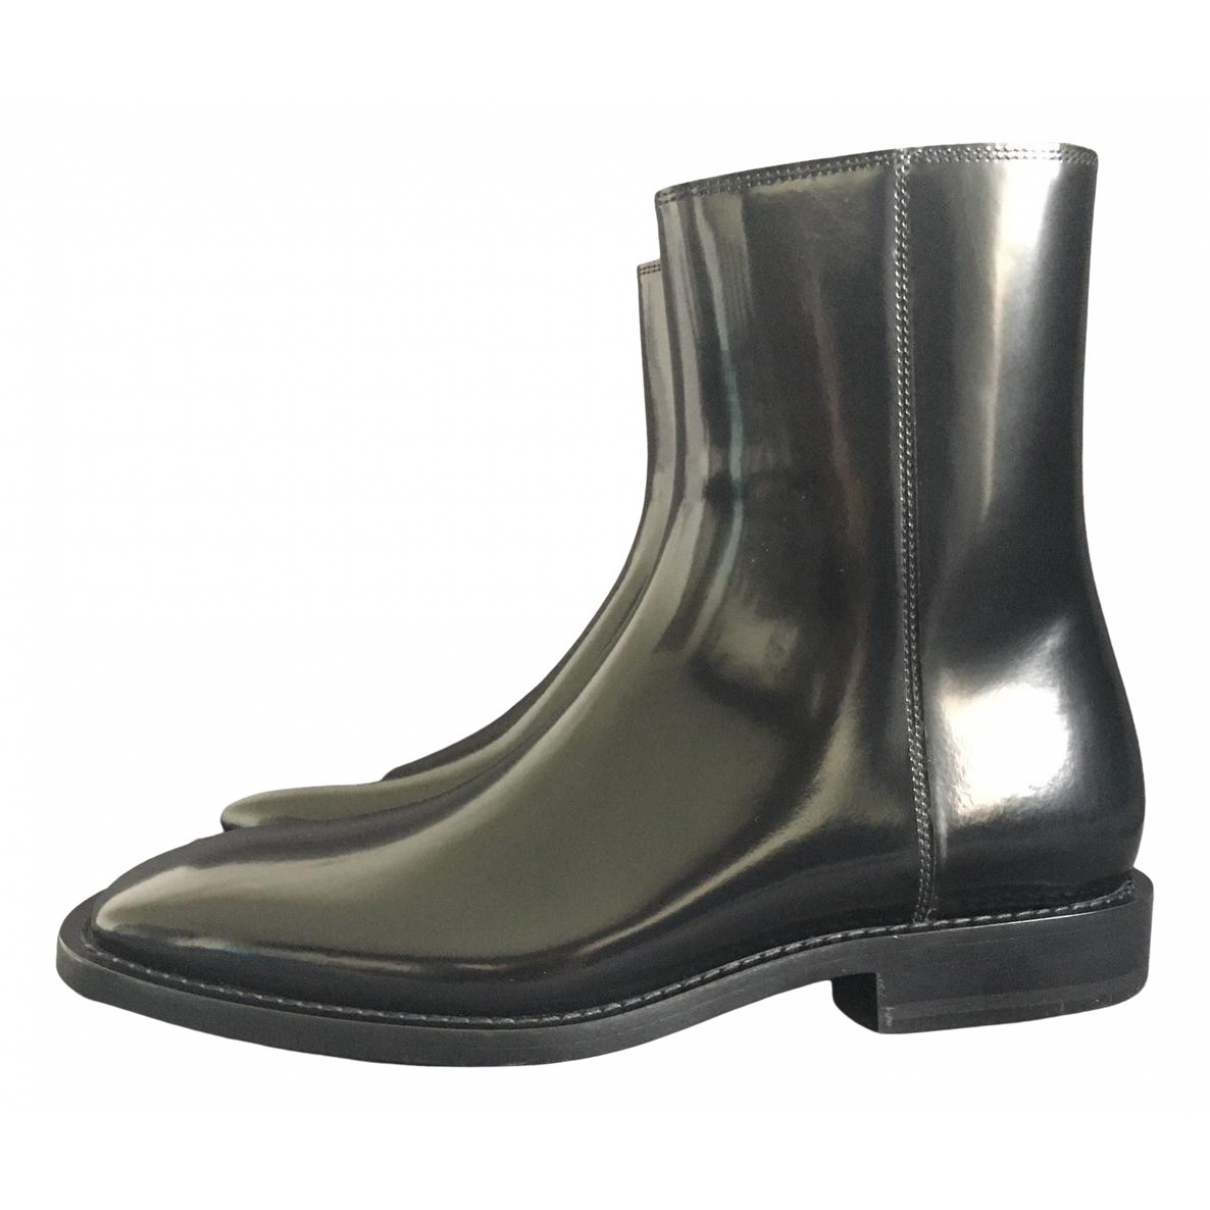 Balenciaga N Black Patent leather Ankle boots for Women 39.5 EU